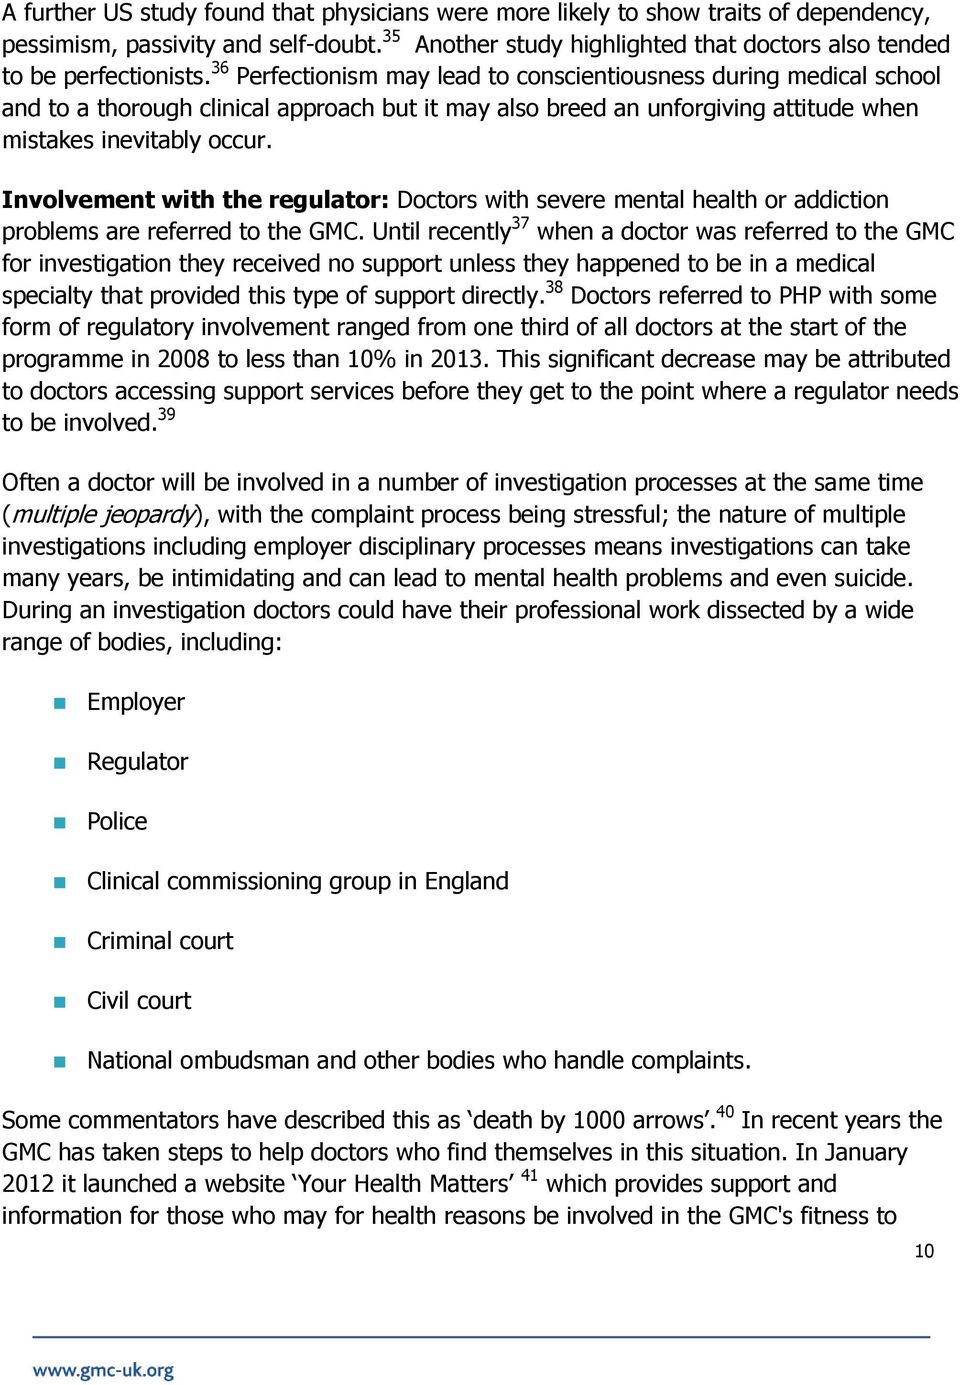 Involvement with the regulator: Doctors with severe mental health or addiction problems are referred to the GMC.